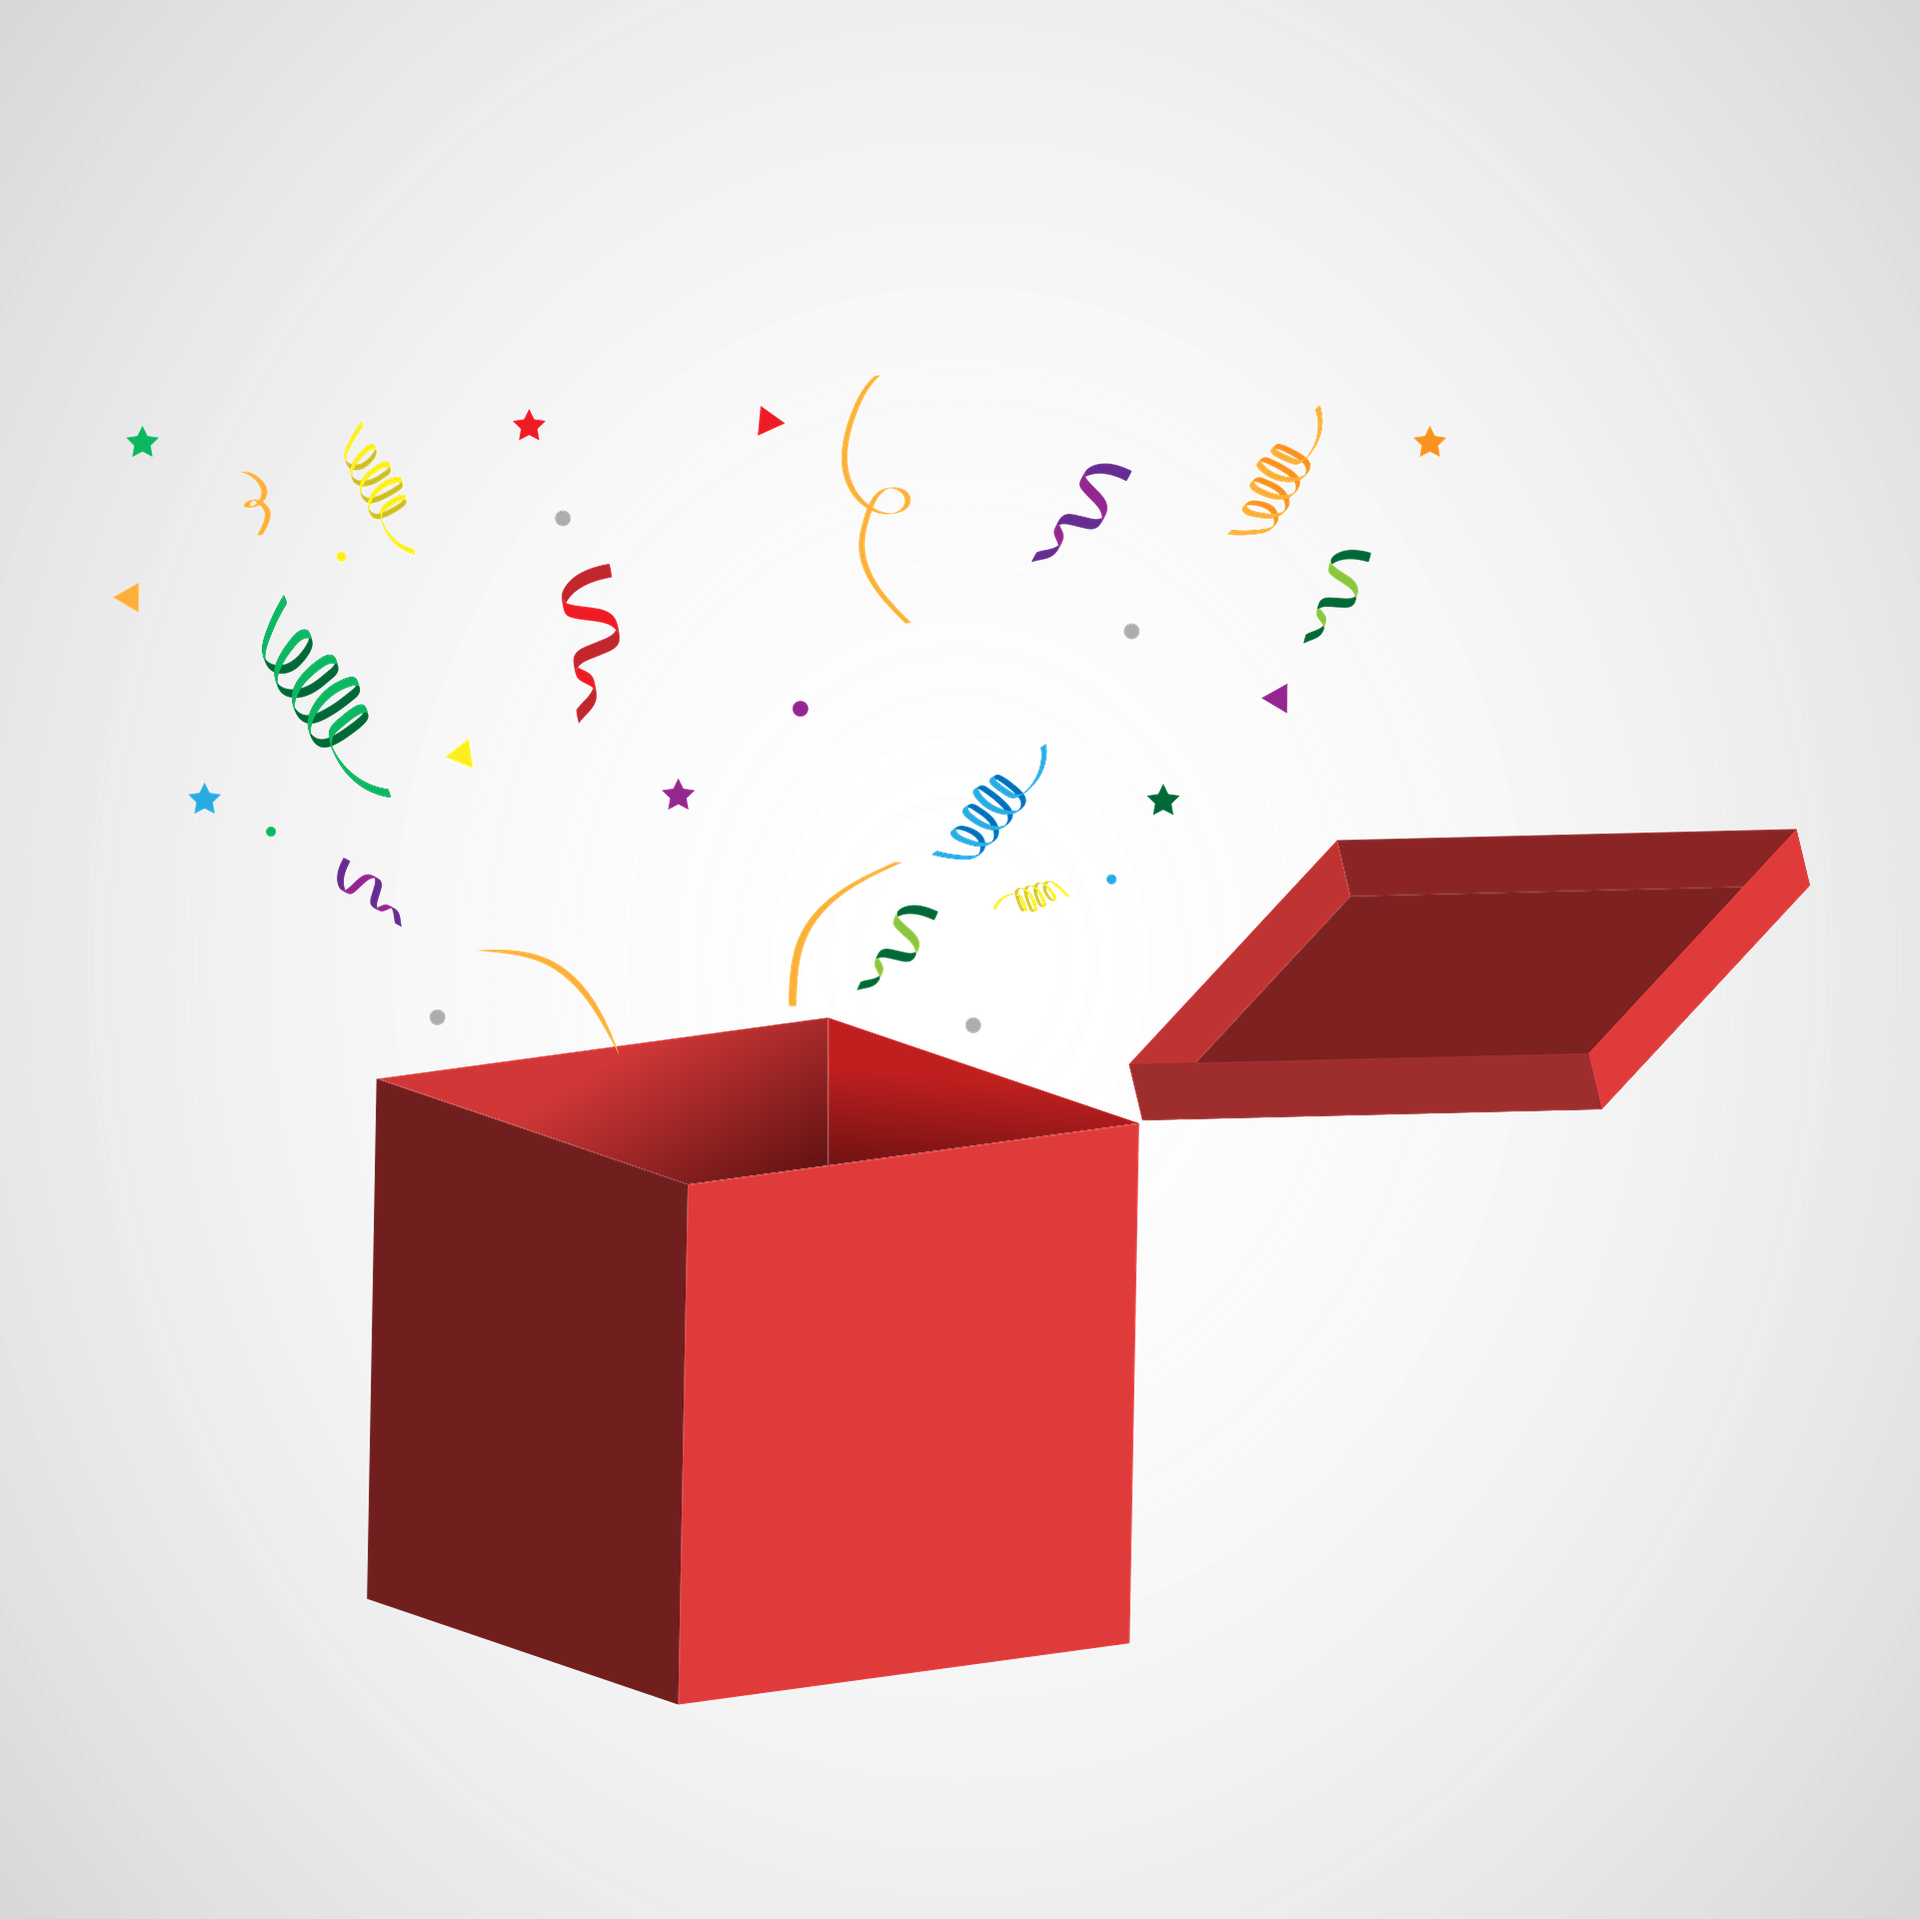 confetti flying out of a box